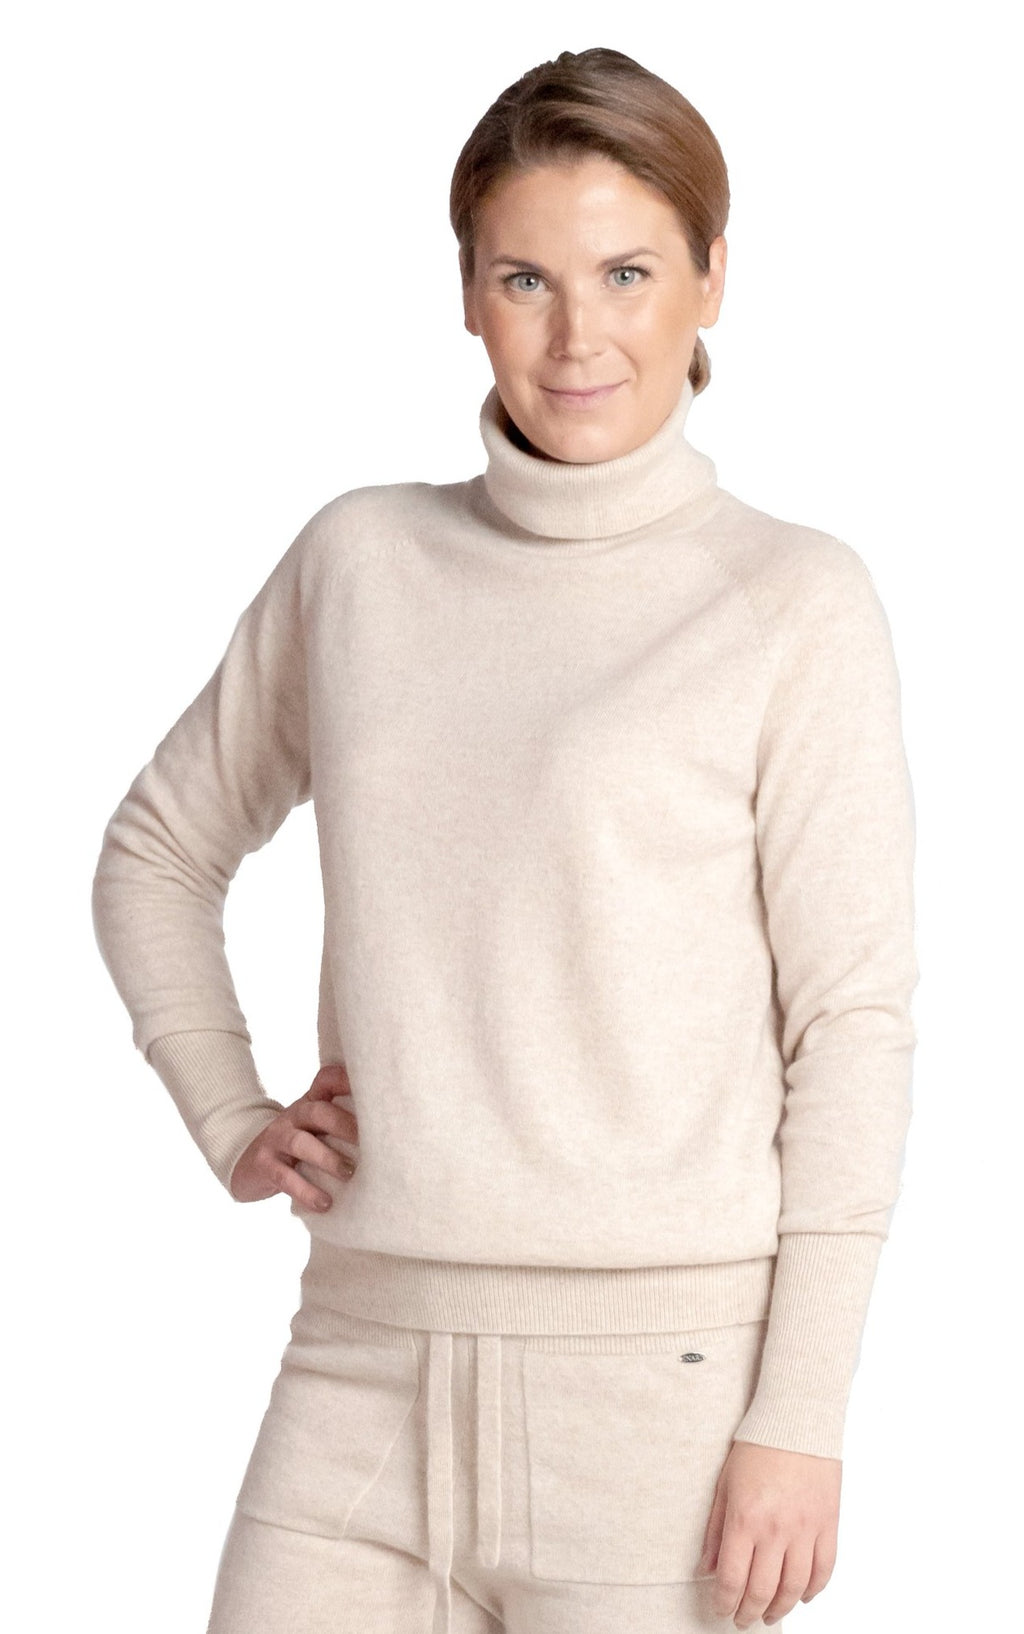 Inari Women's beige cashmere turtleneck sweater - front side - 100% high-quality cashmere - Inari-clothing.fi